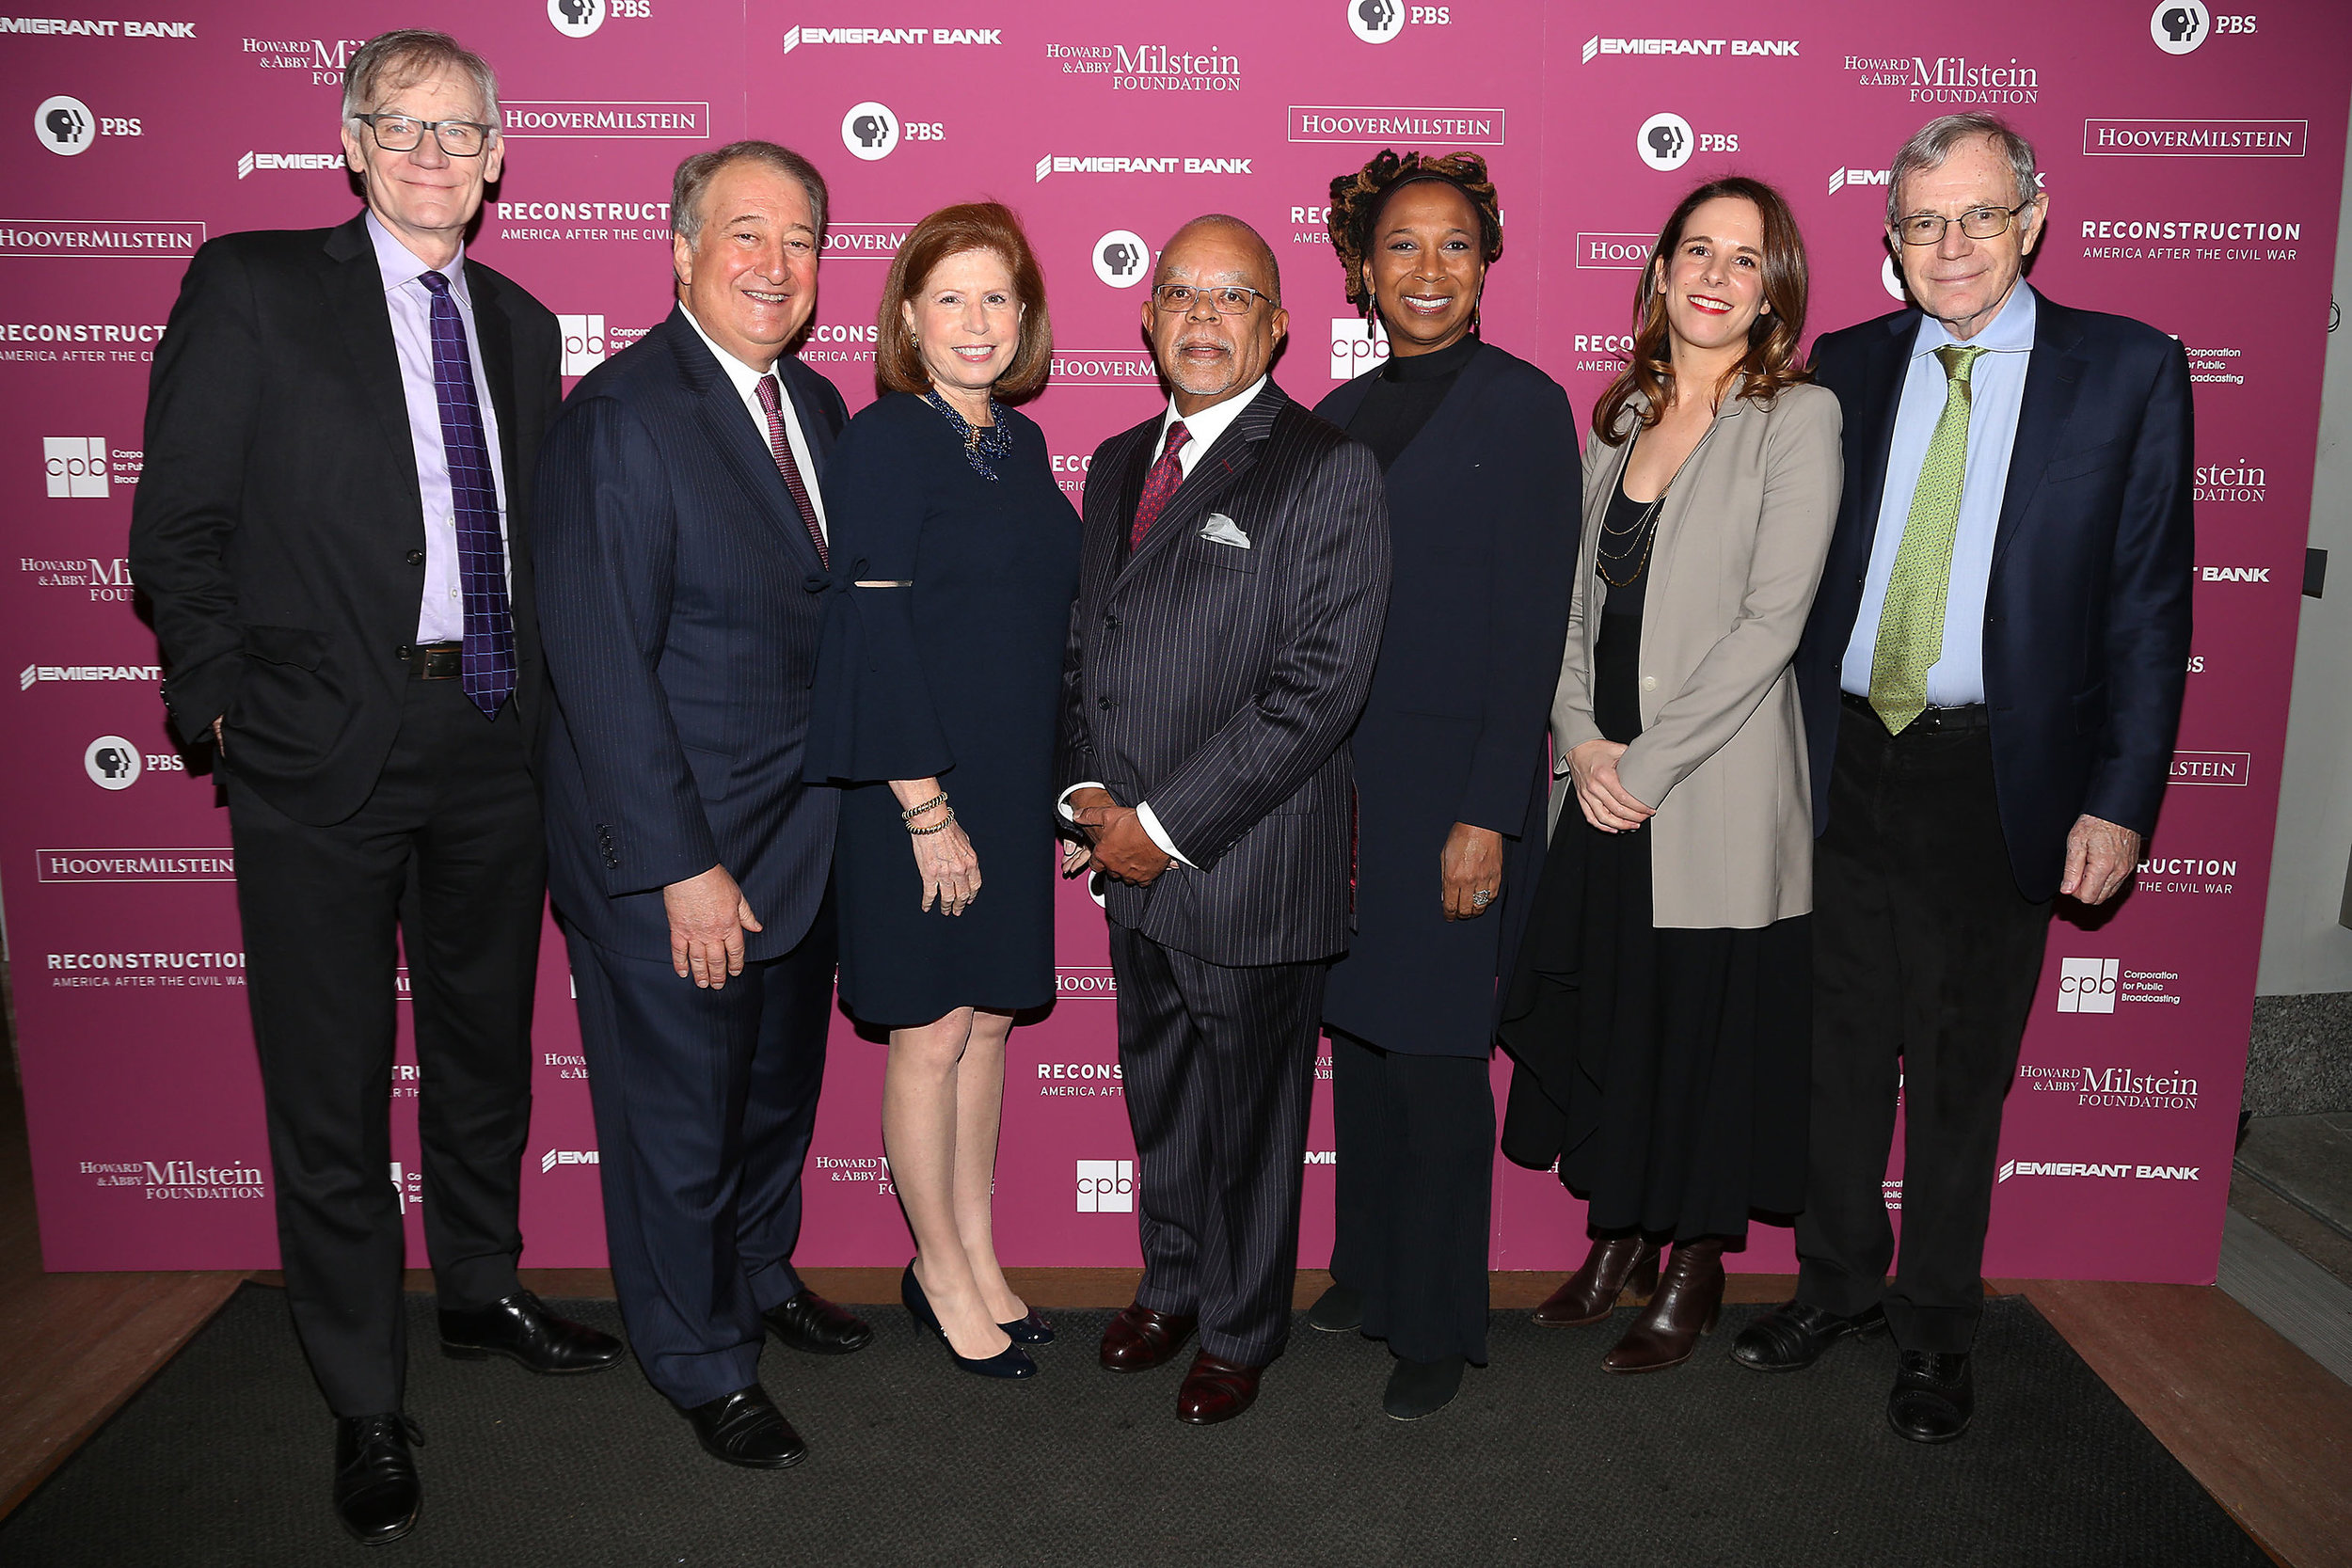 "Howard Milstein (second from left) celebrates the launch of Dr. Henry Louis Gates' new series, ""Reconstruction: America After the Civil War,"" with (l-r) Professor David Blight, Abby Milstein, Dr. Gates, Professor Kimberlé Crenshaw, Julia Marchesi and Professor Eric Foner. The launch event was held March 4, 2019, at the New-York Historical Society."